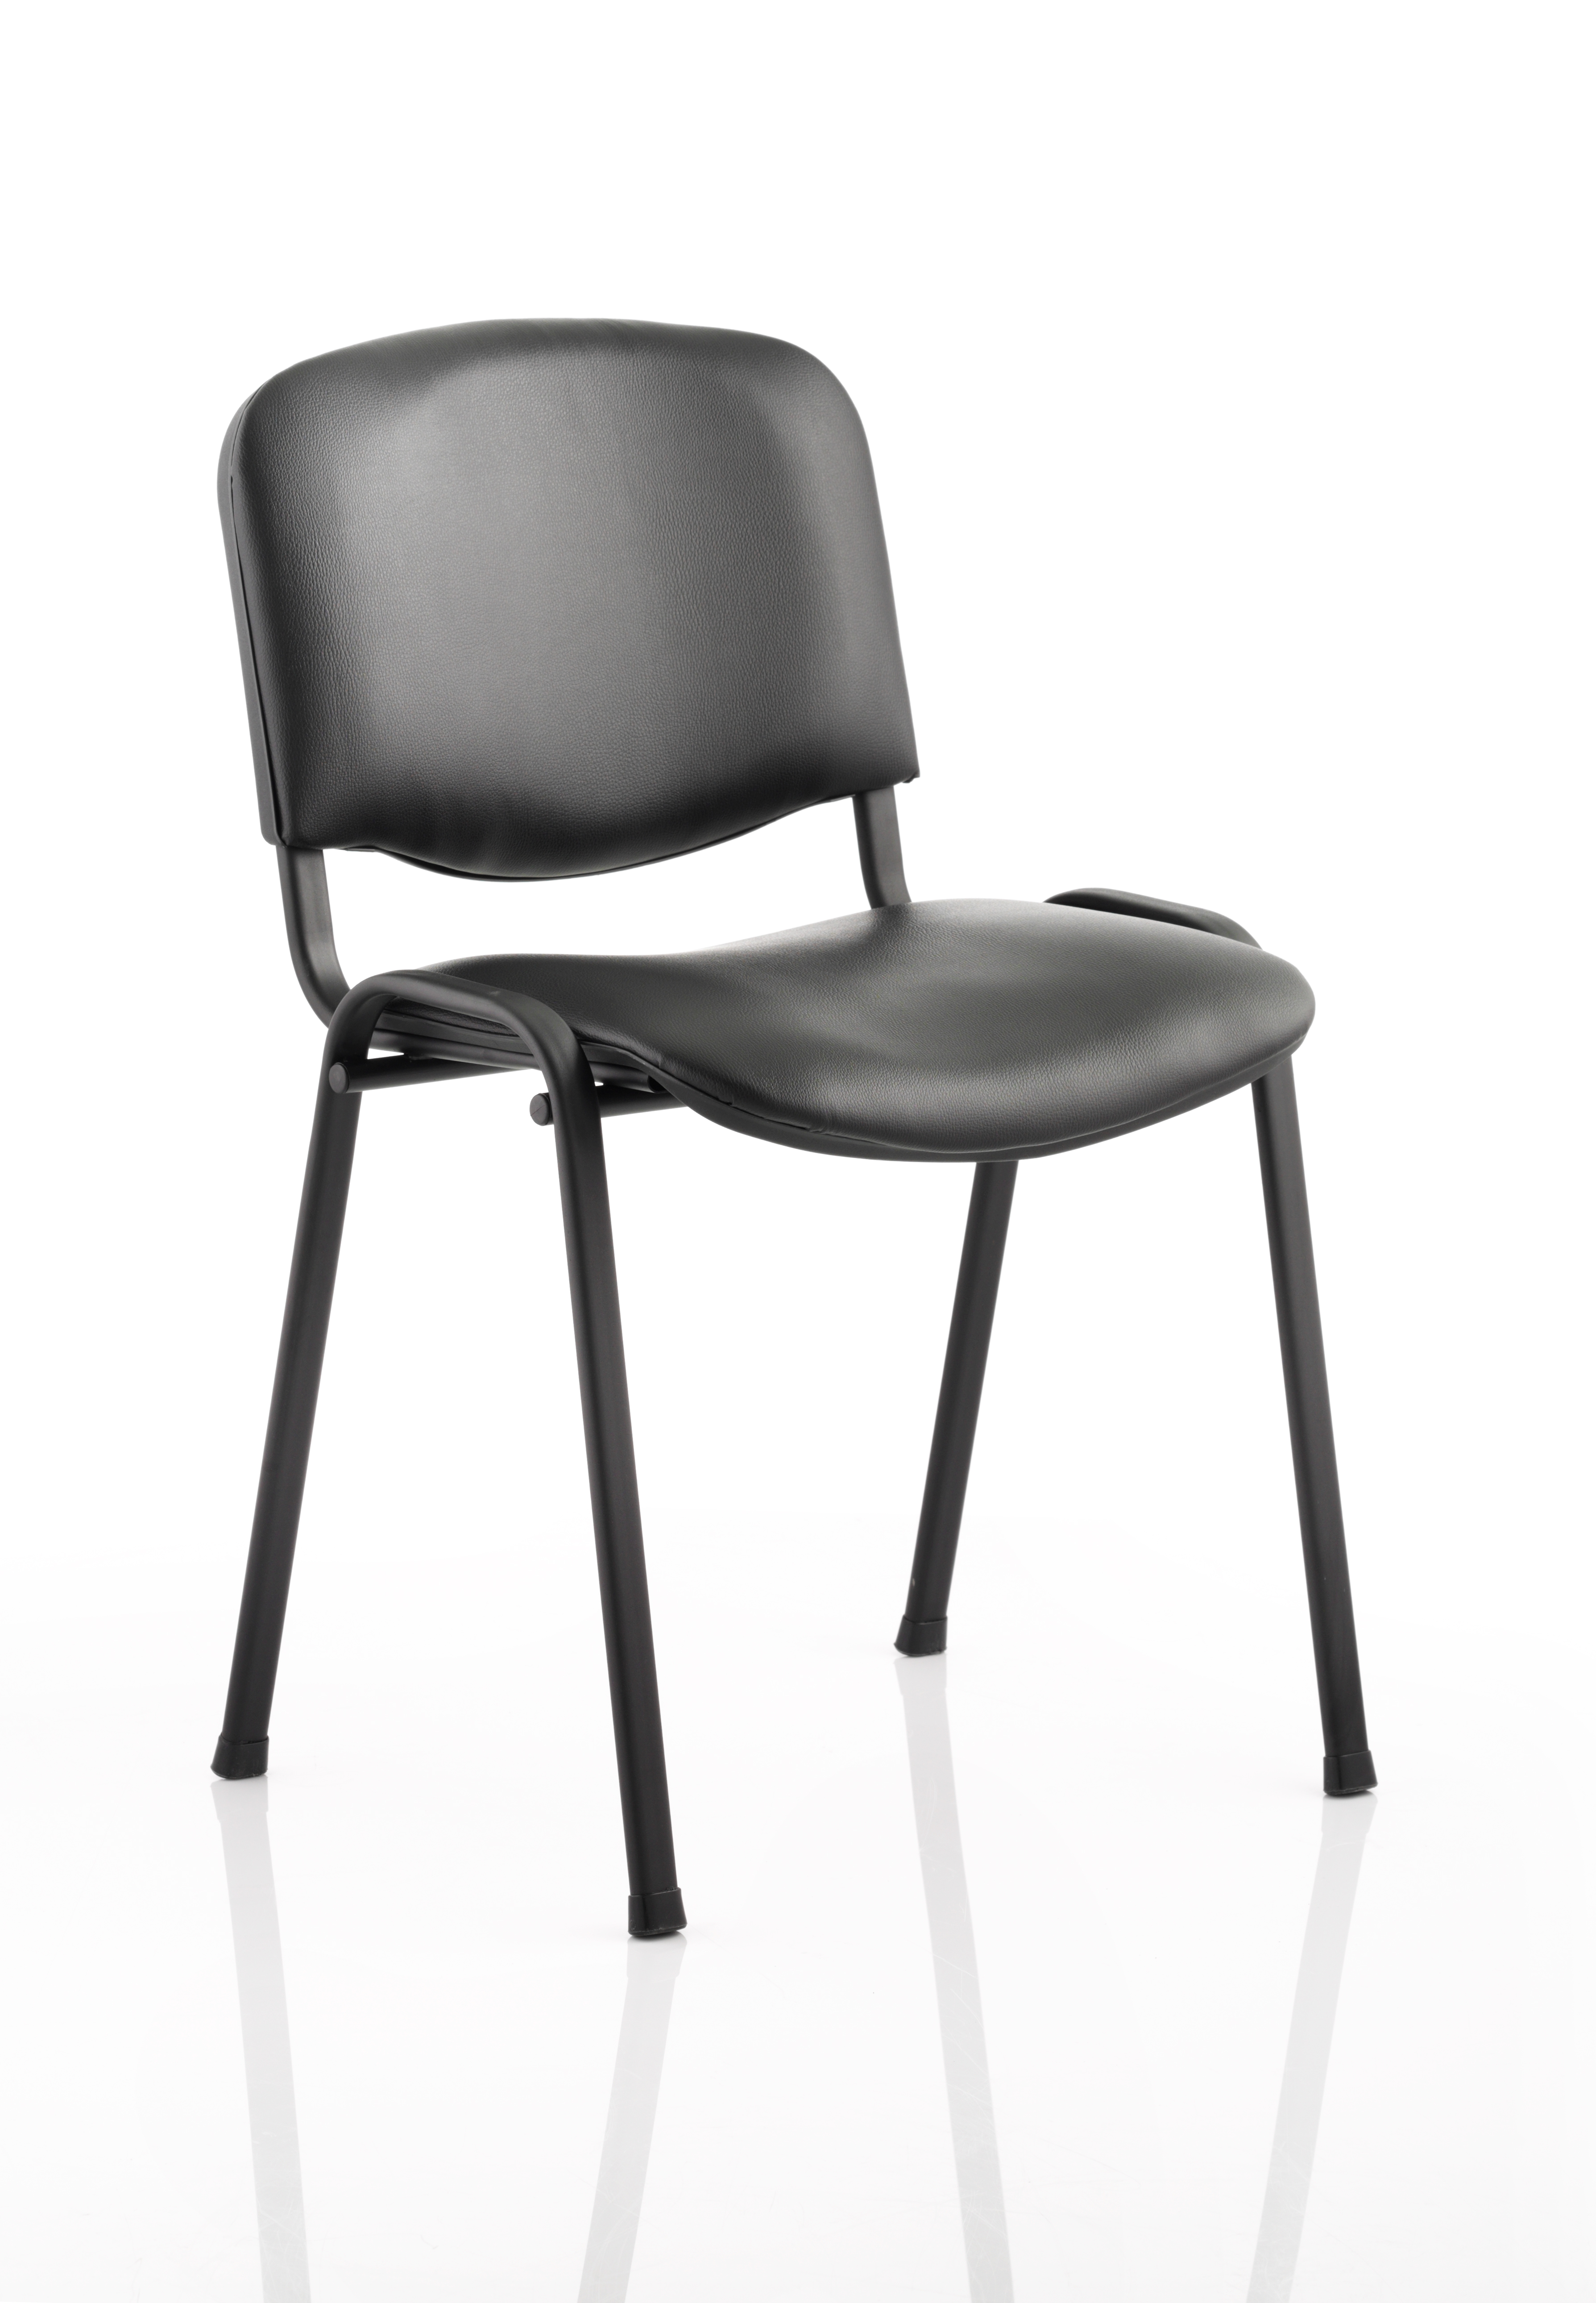 Stacking Chairs ISO Stacking Chair Black Vinyl Black Frame BR000062